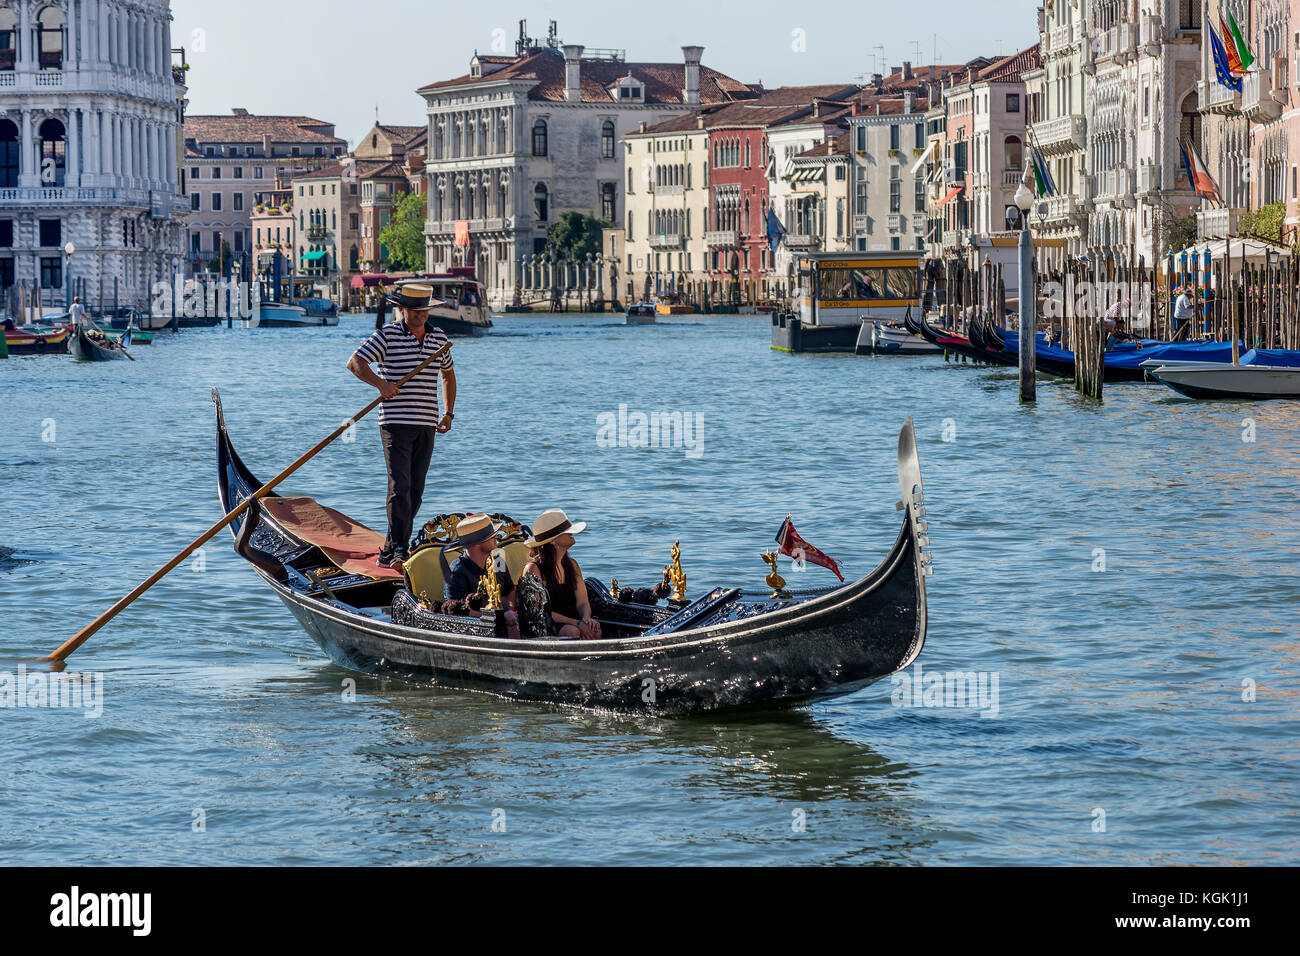 Honeymooners crossing the Grand Canal on a gondola, Venice, Italy - Stock Image